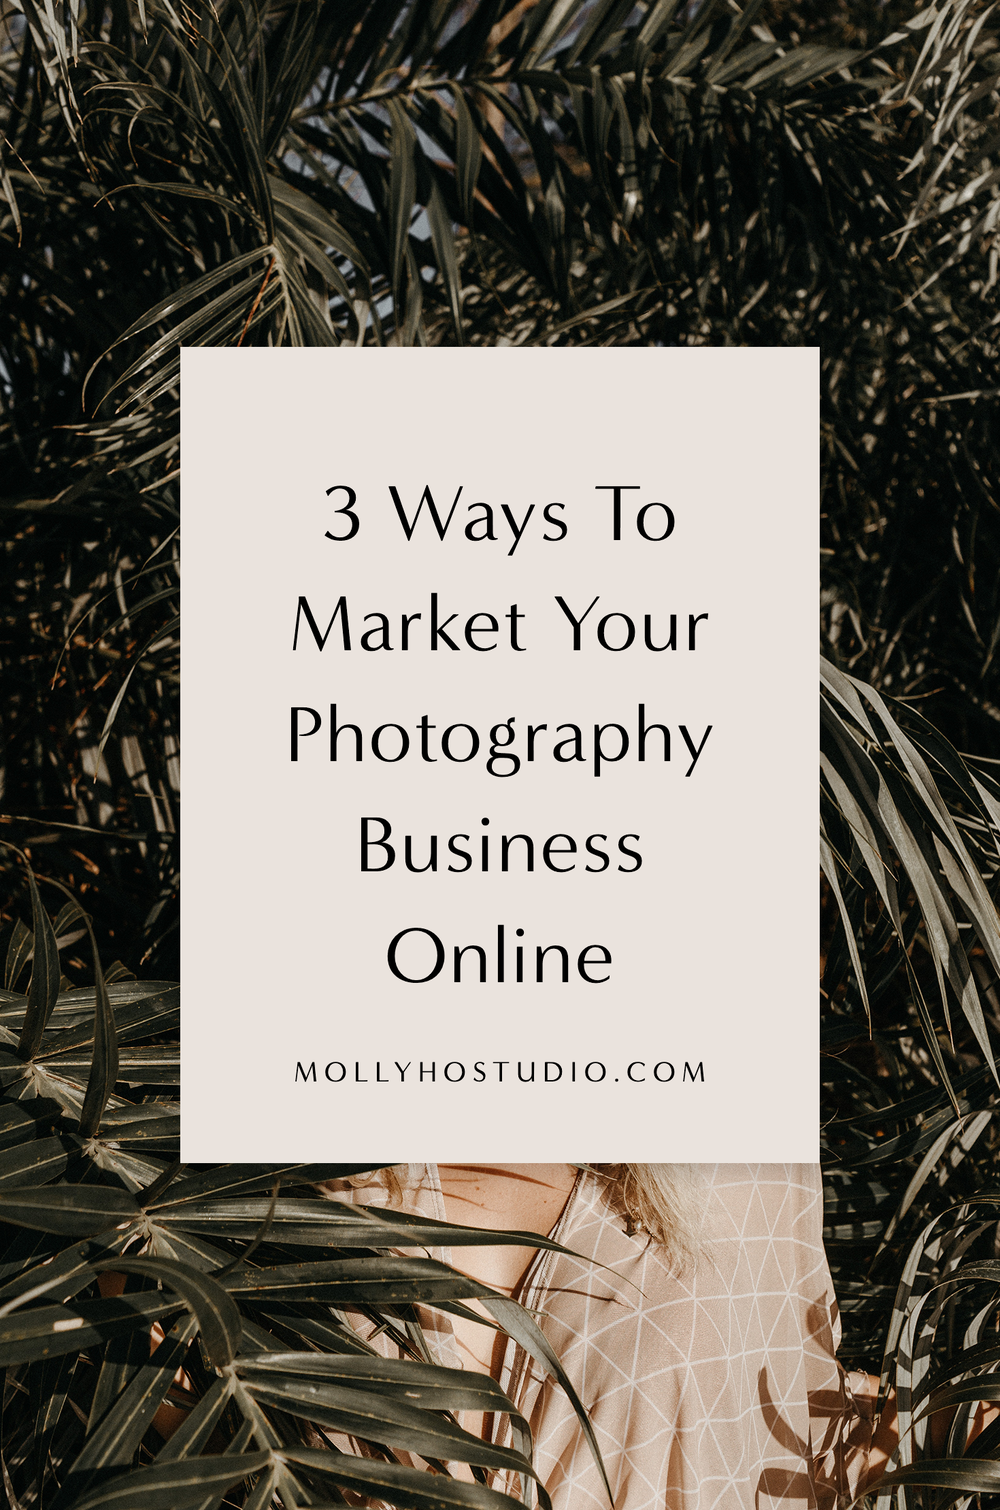 3 Ways To Market Your Photography Business Online | How To Market Your Photography Business On Social Media | Branding and Marketing Tips for Photographers | Growing Your Photography Business | Getting More Photography Clients | How To Sell Yourself As A Photographer | Molly Ho Studio